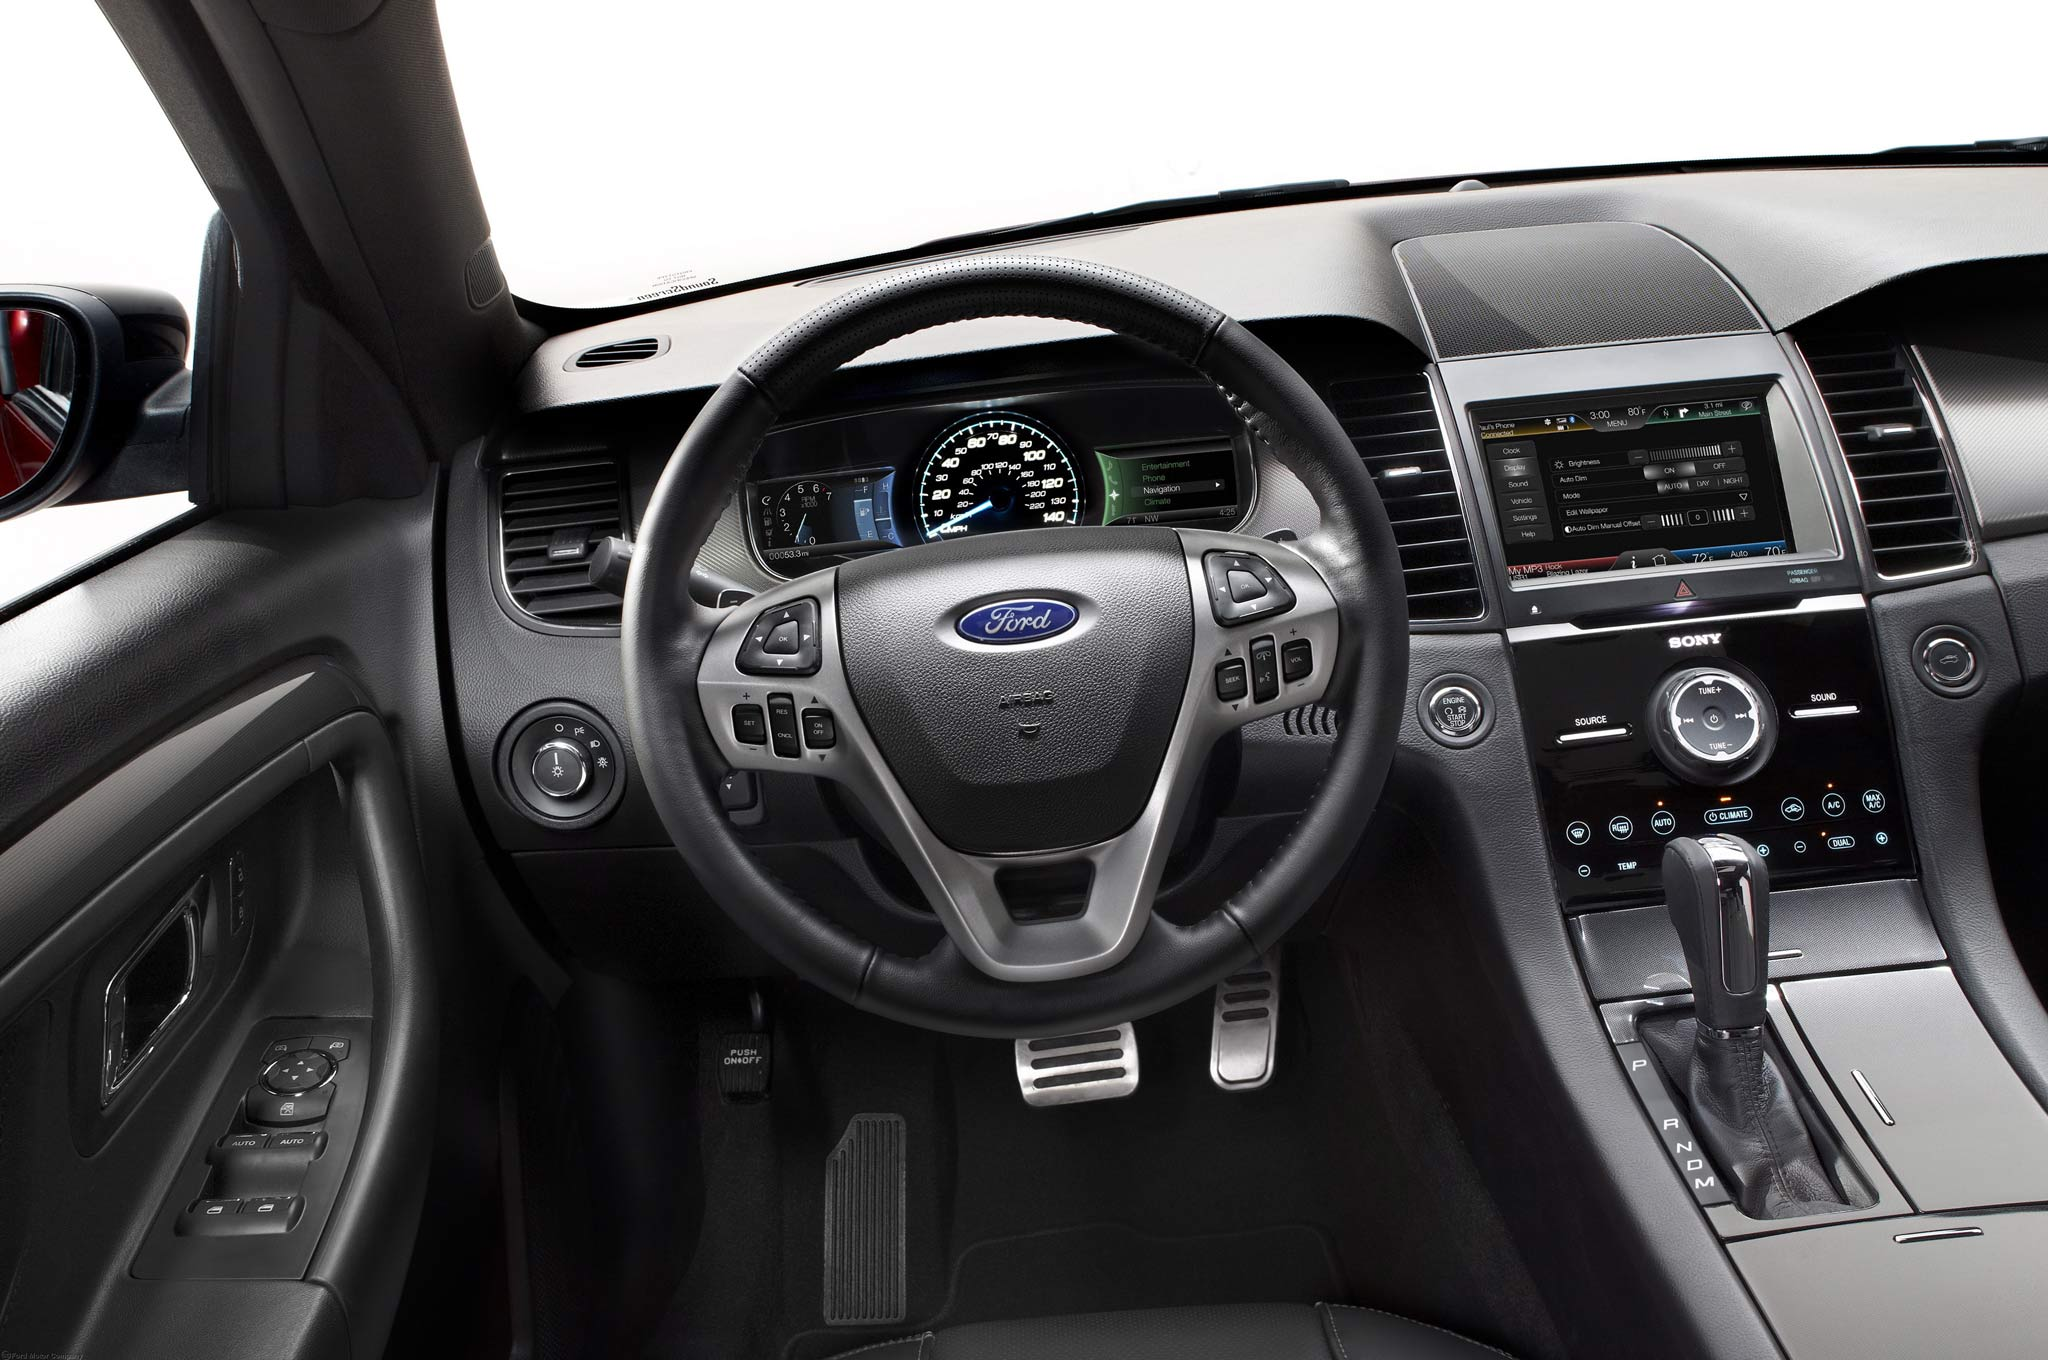 First Drive: 2013 Ford Taurus SHO Performance Package - Automobile Magazine